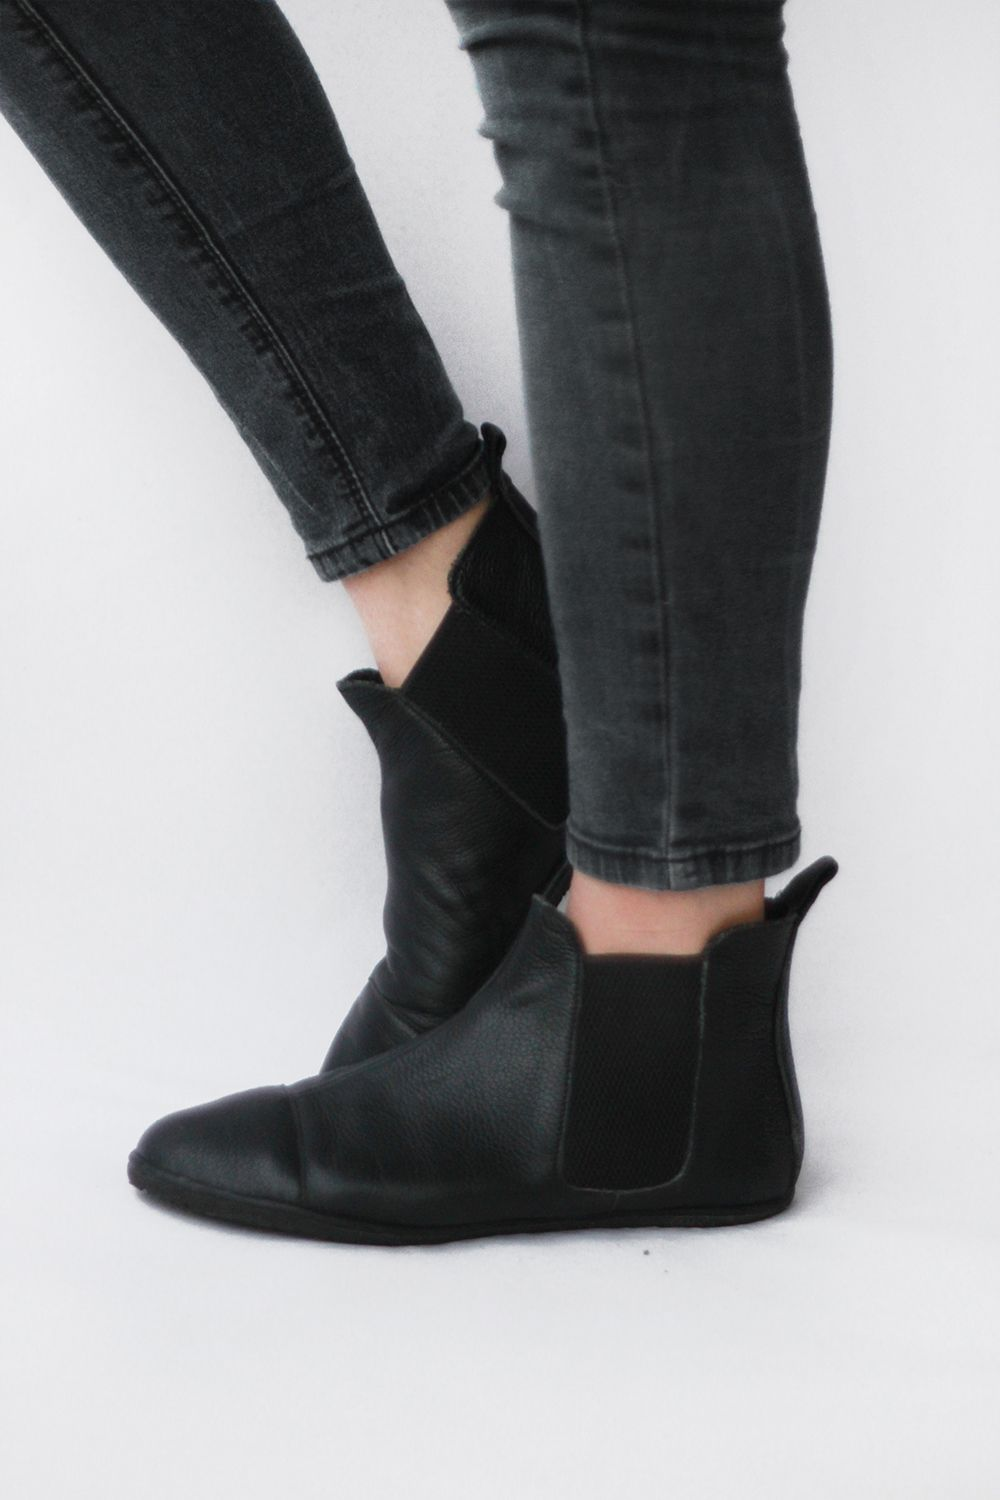 d98fee845cf The Drifter Leather handmade shoes — Chelsea boots in Pebbled Black